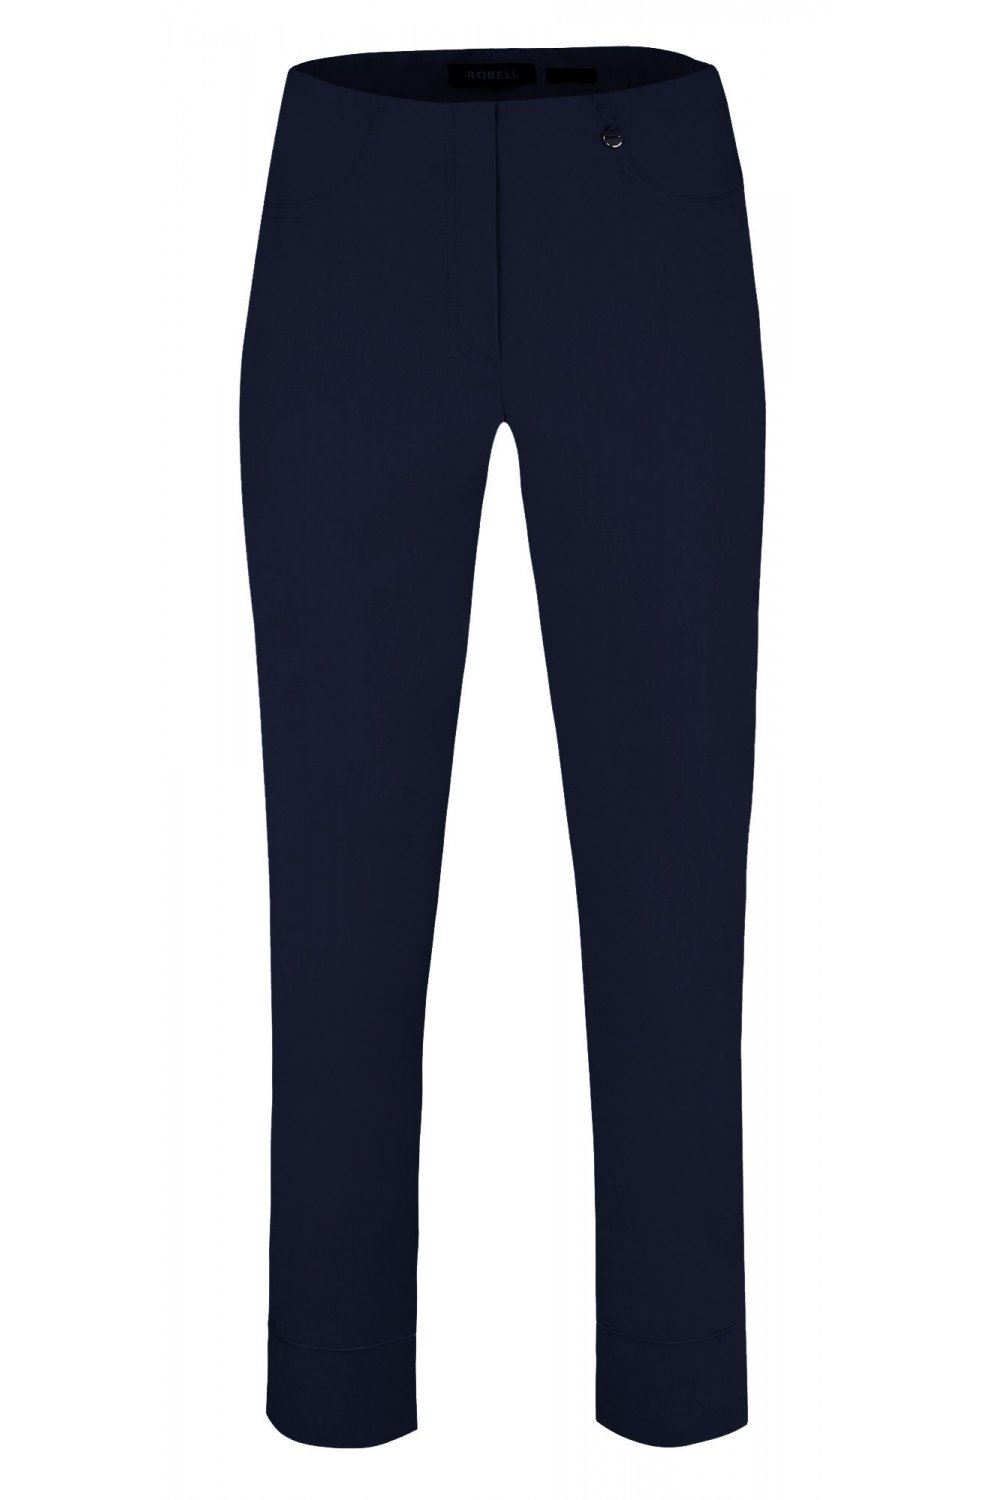 Bella Ankle Grazer Stretch Trouser in Navy - Renaissance Boutiques Ireland